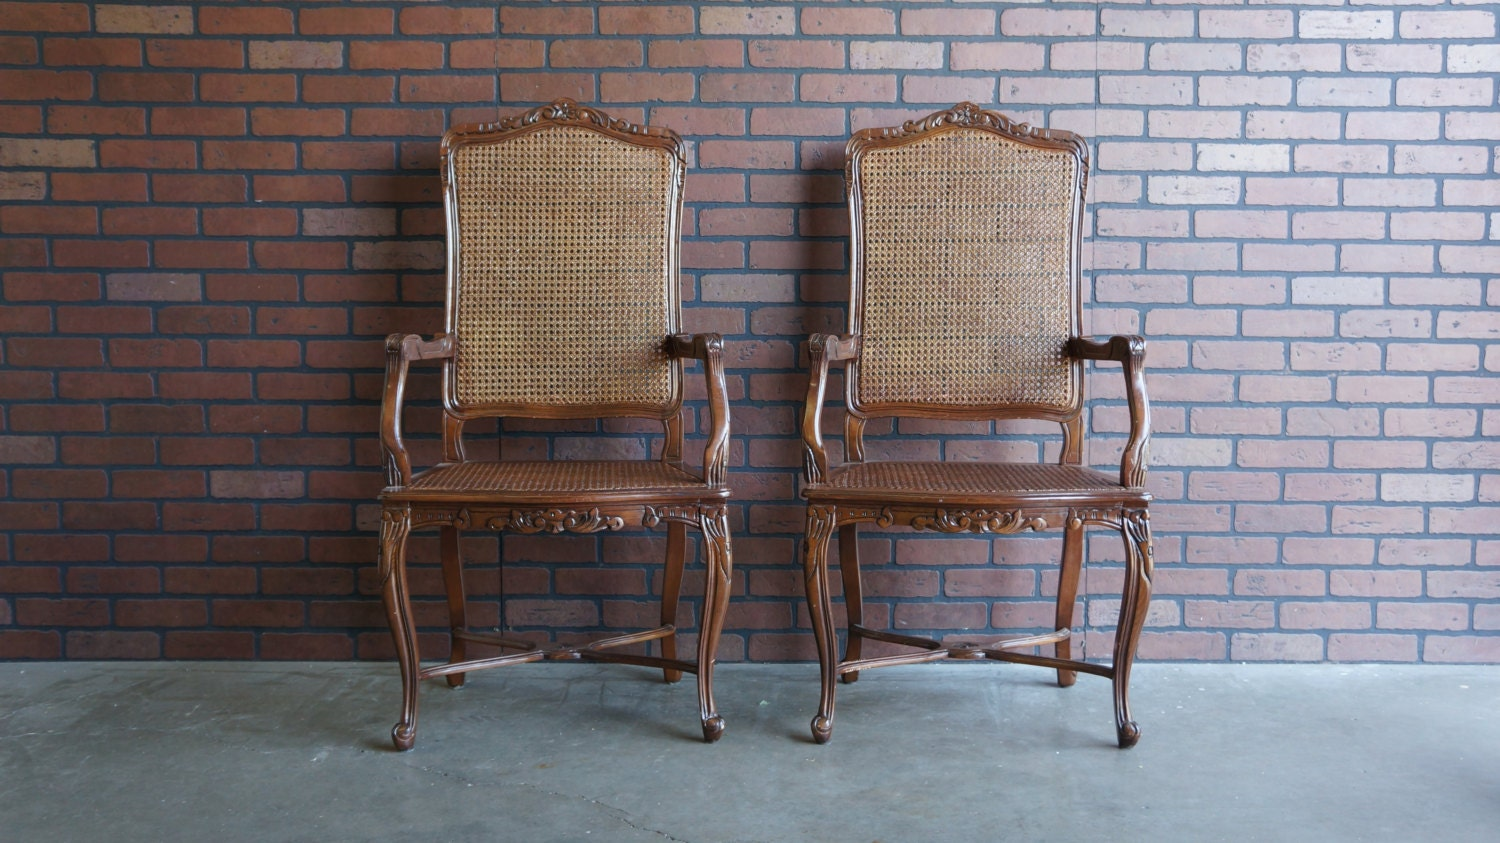 French Cane Chair french provincial dining chairs / cane dining chairs / french